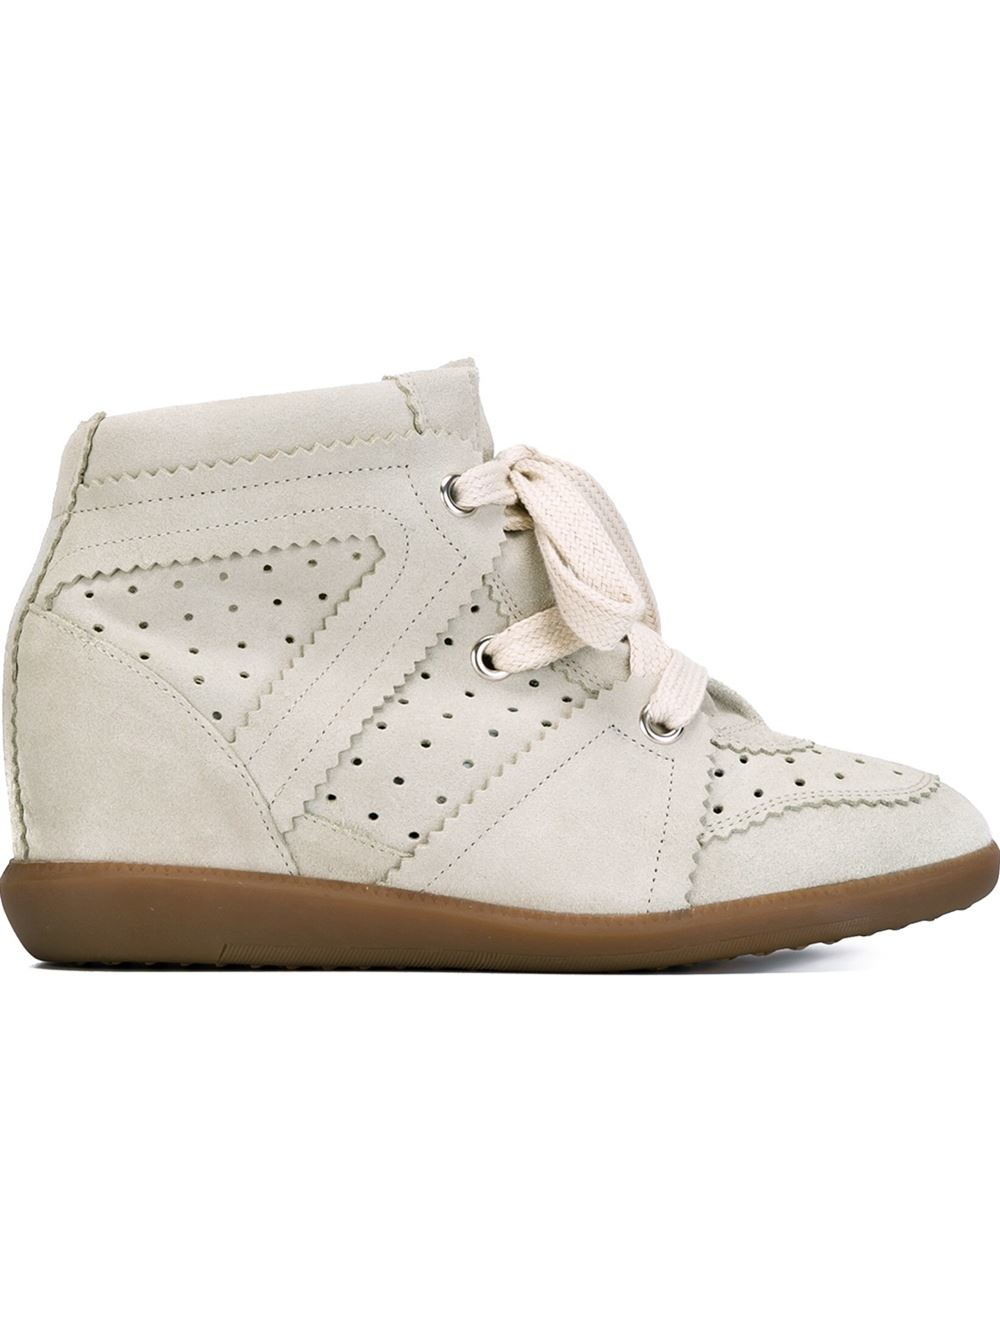 isabel marant toile bobby concealed wedge sneakers in natural lyst. Black Bedroom Furniture Sets. Home Design Ideas